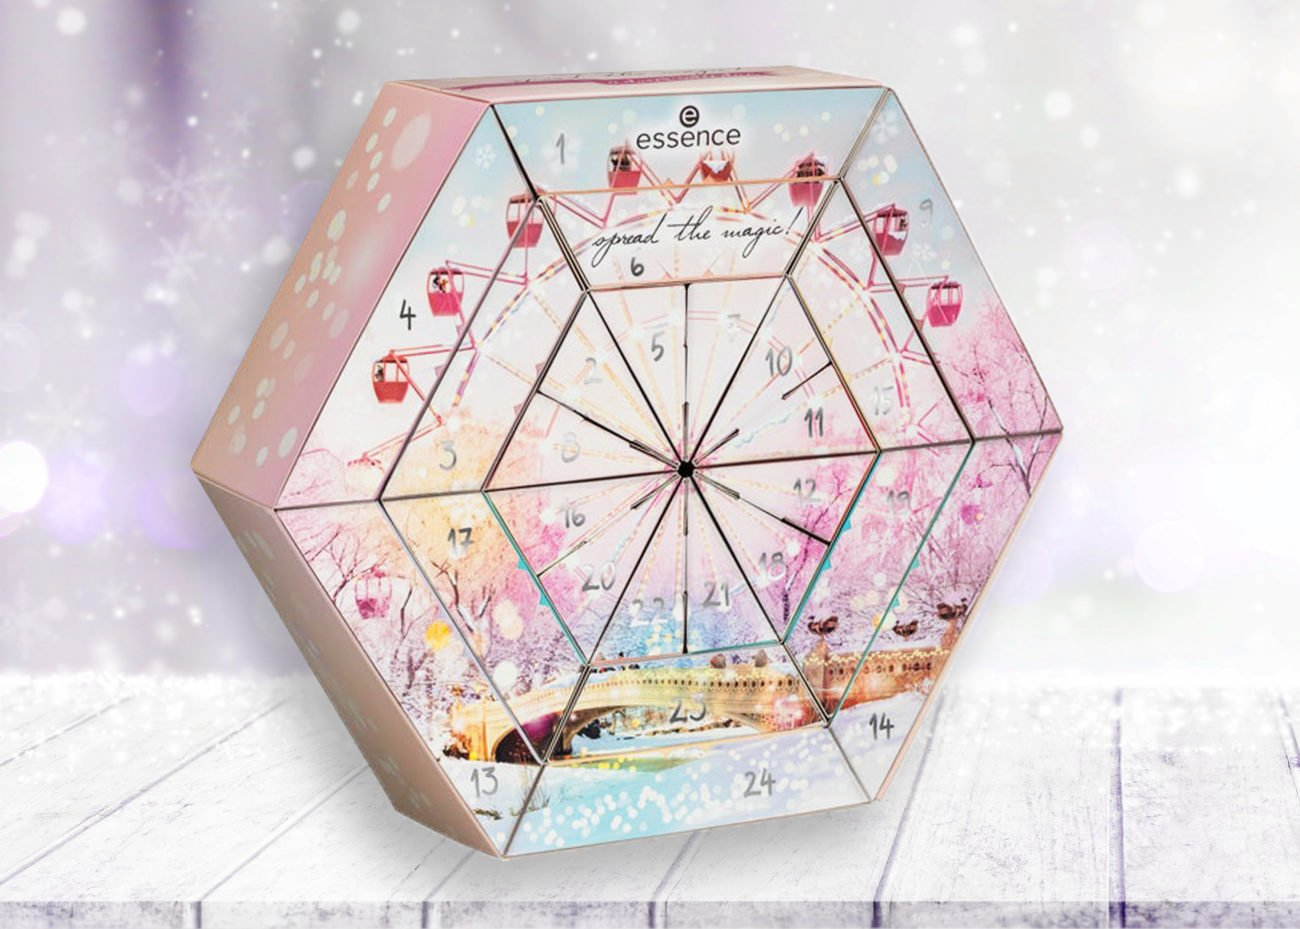 Essence Adventskalender 2019